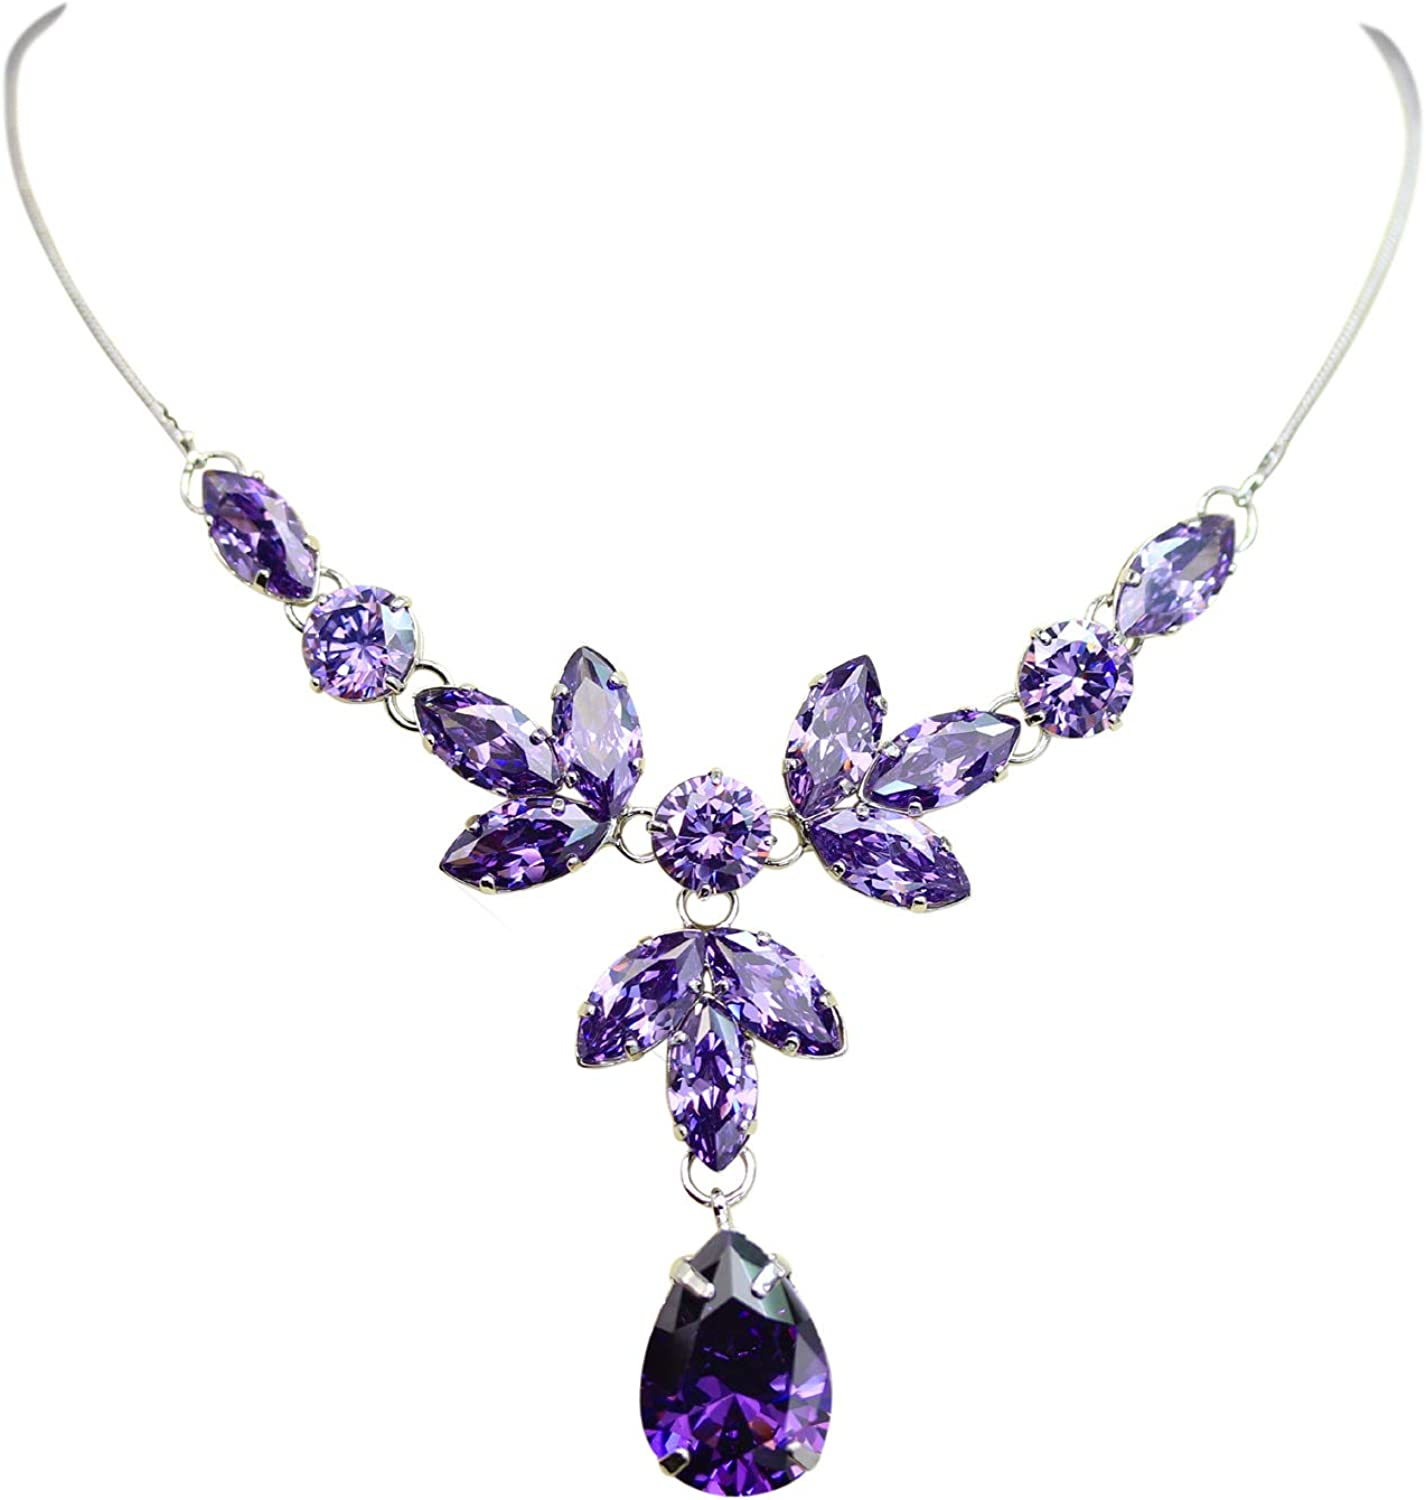 Faship Gorgeous Cubic Zirconia CZ Crystal Floral Necklace Earrings Set